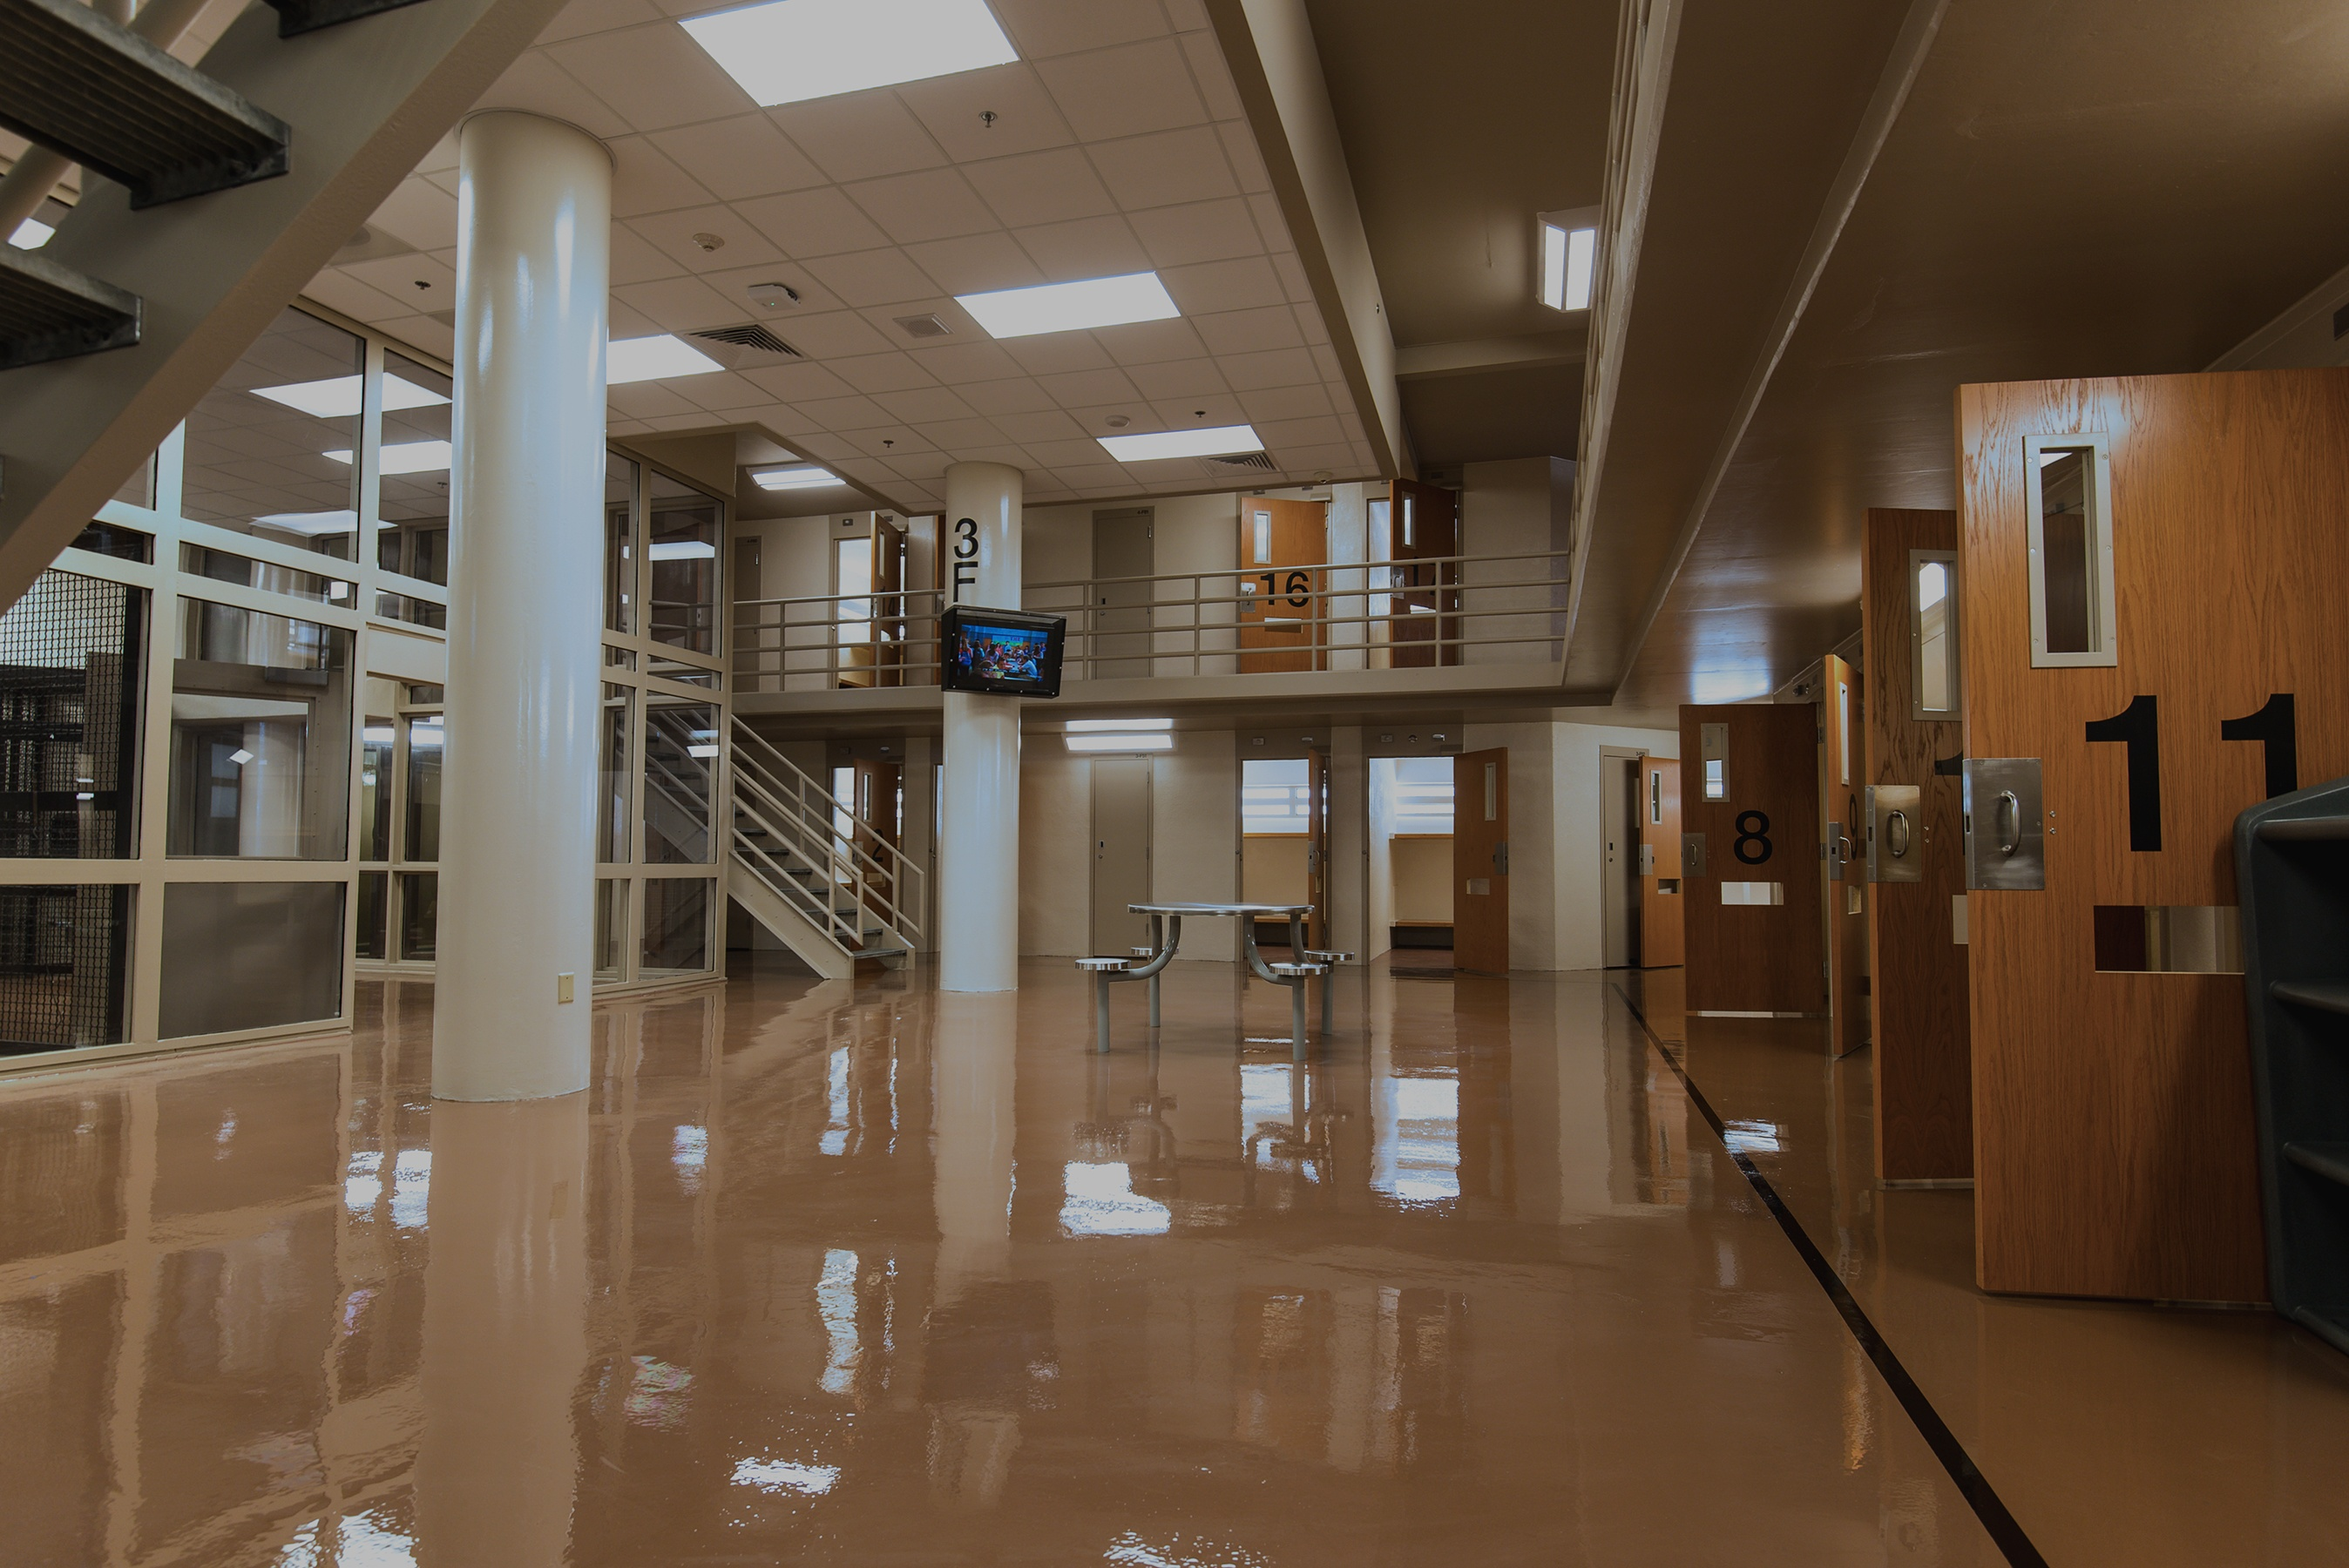 Clark County Detention Center Renovations Phase 2